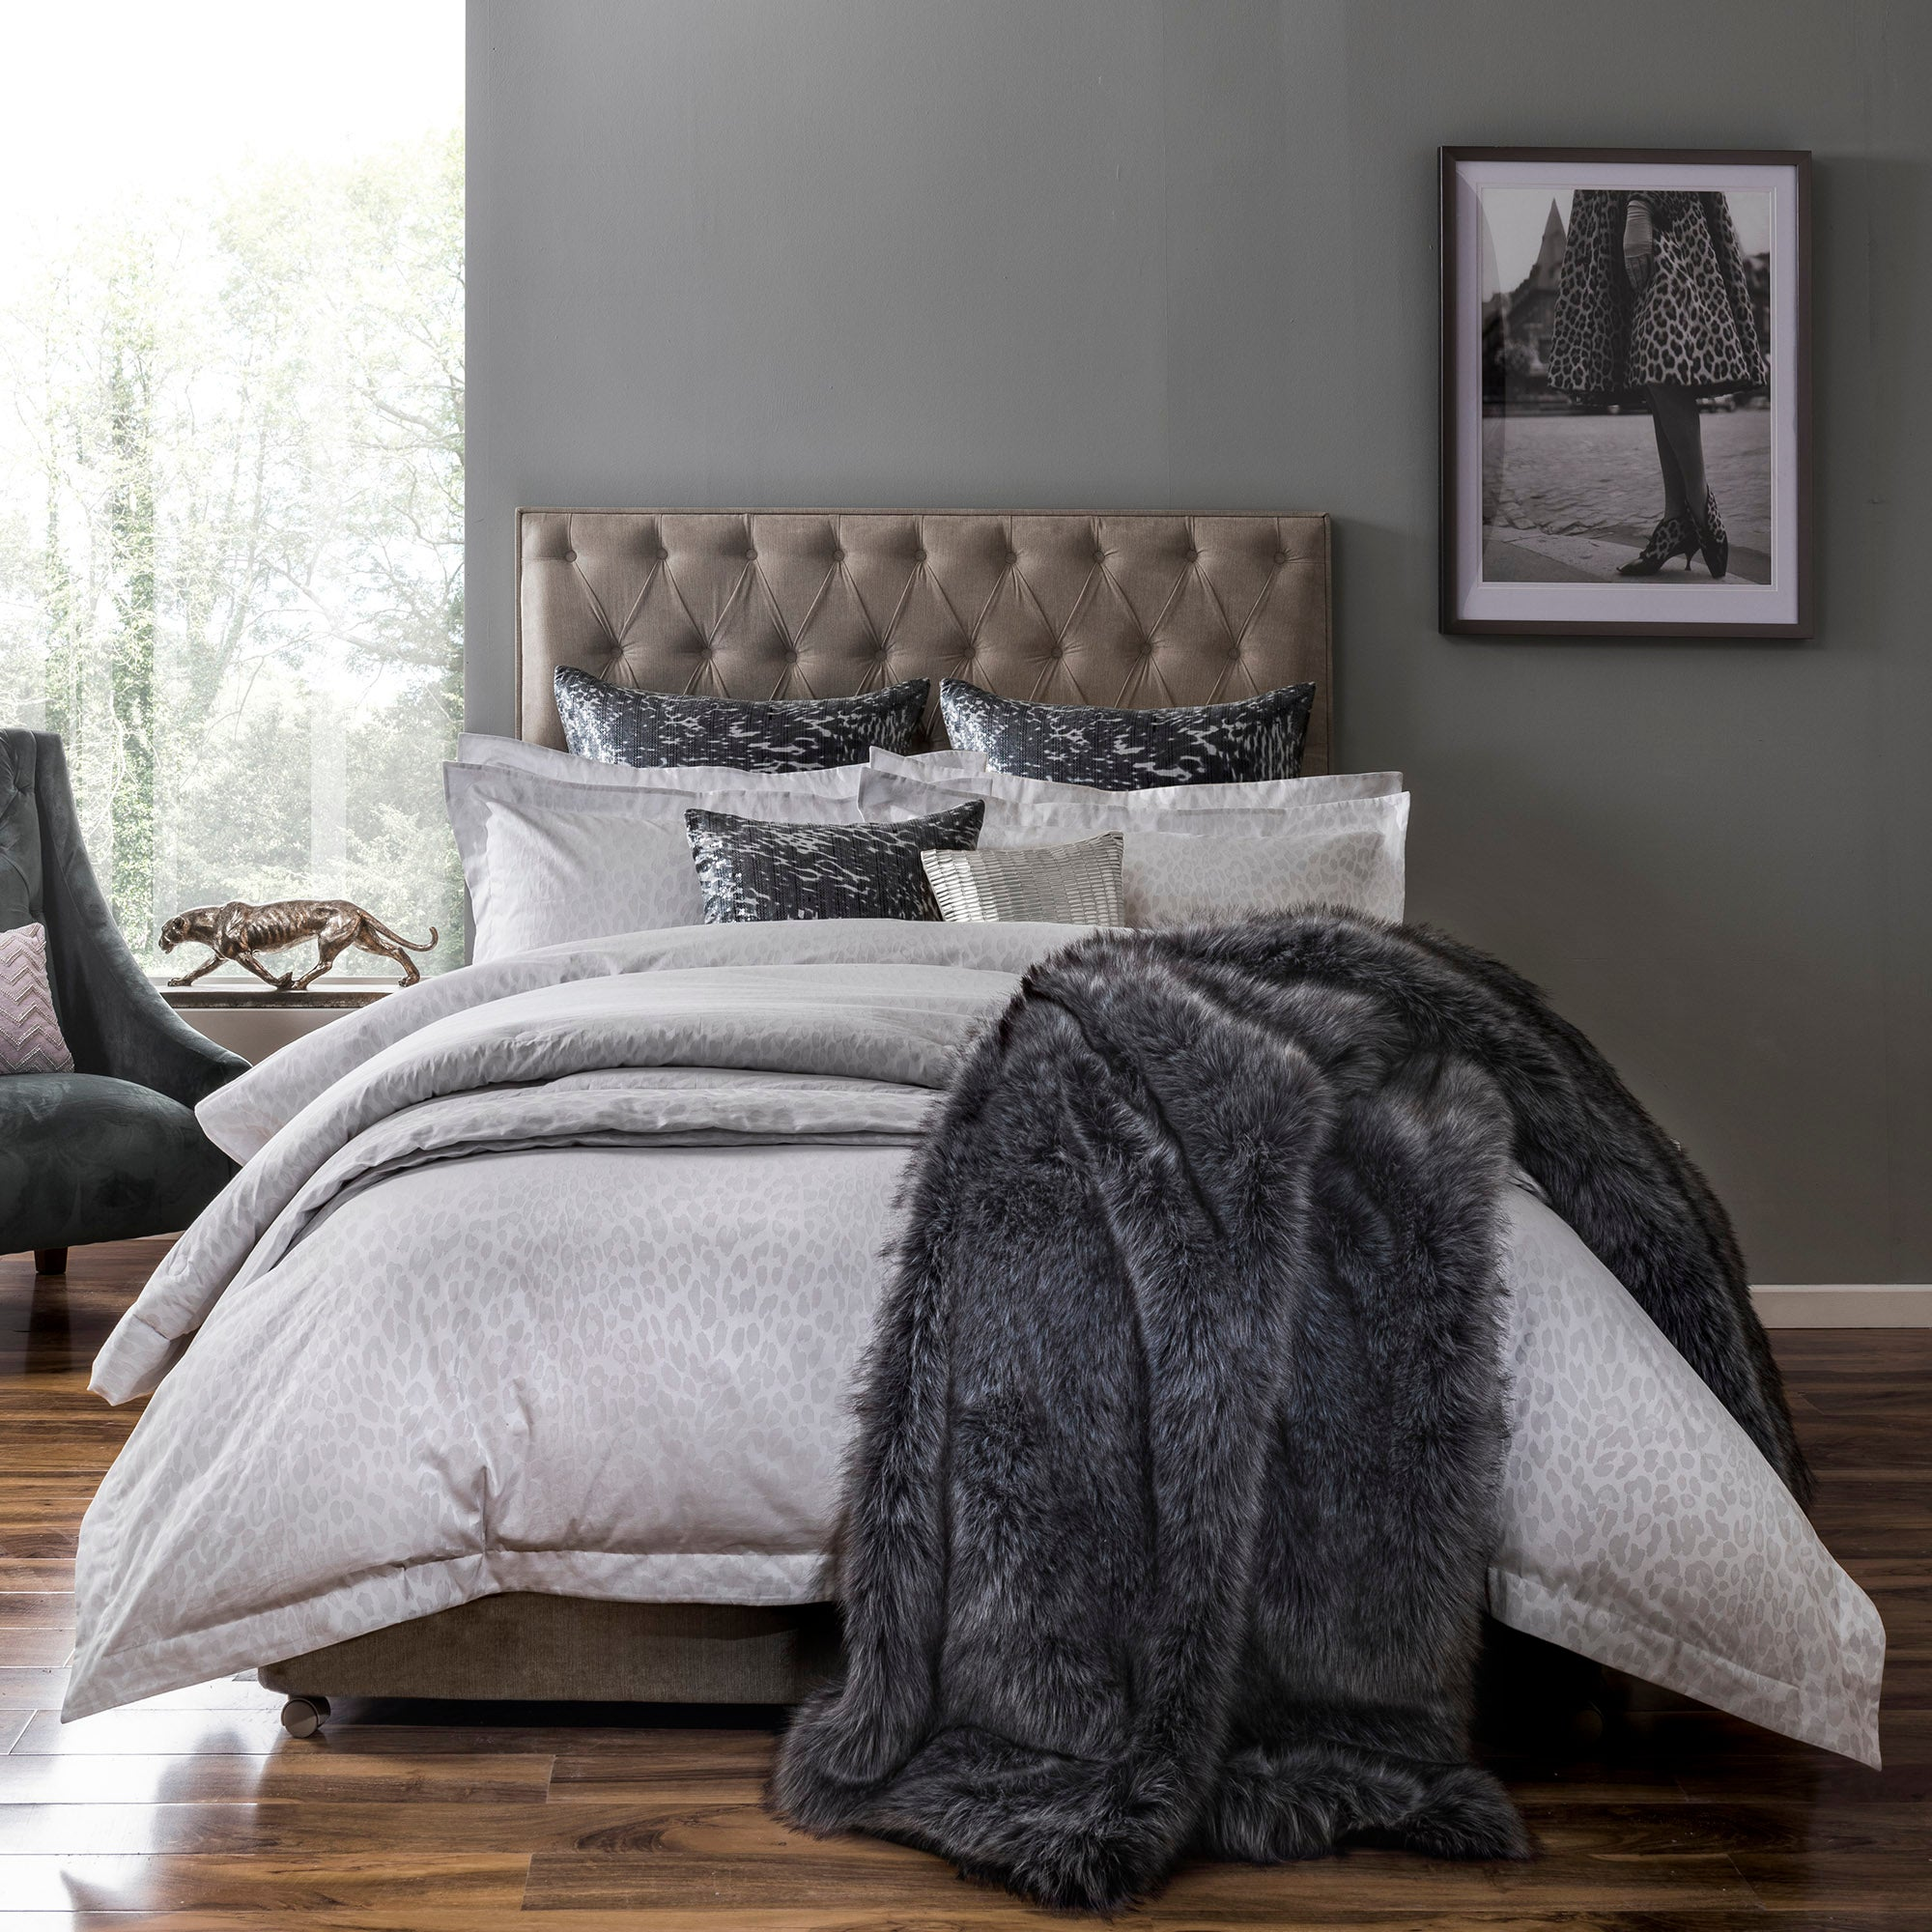 Image of 5A Fifth Avenue Broadway Jacquard 100% Cotton Duvet Cover Grey